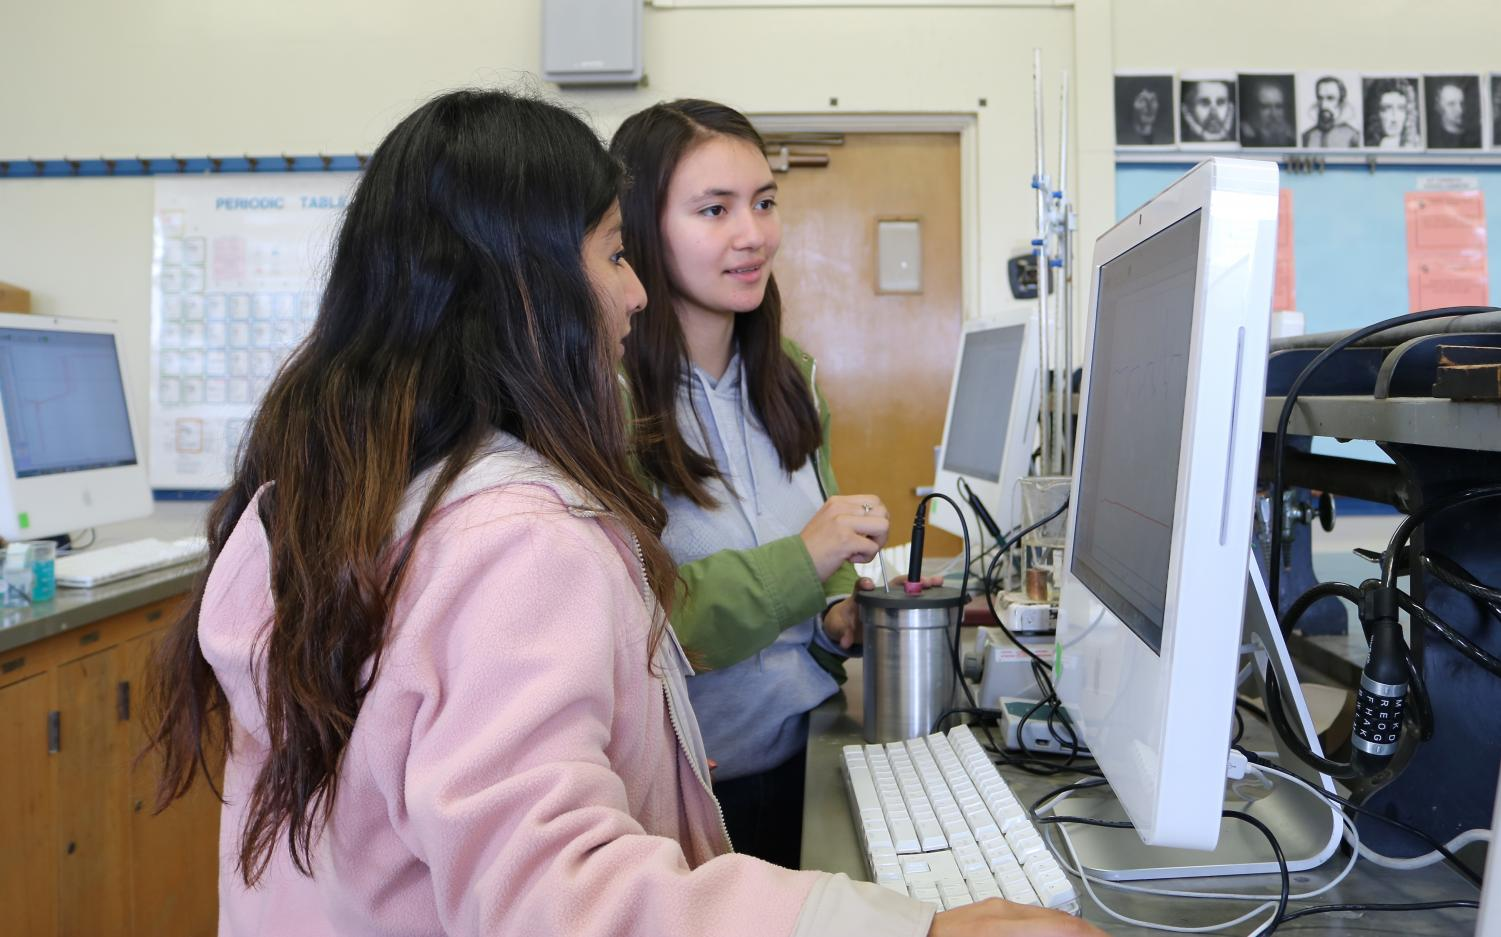 Barry Vella's physics students experiment with the iMac computers, donated by UCLA, and the materials, funded through DonorsChoose Projects.